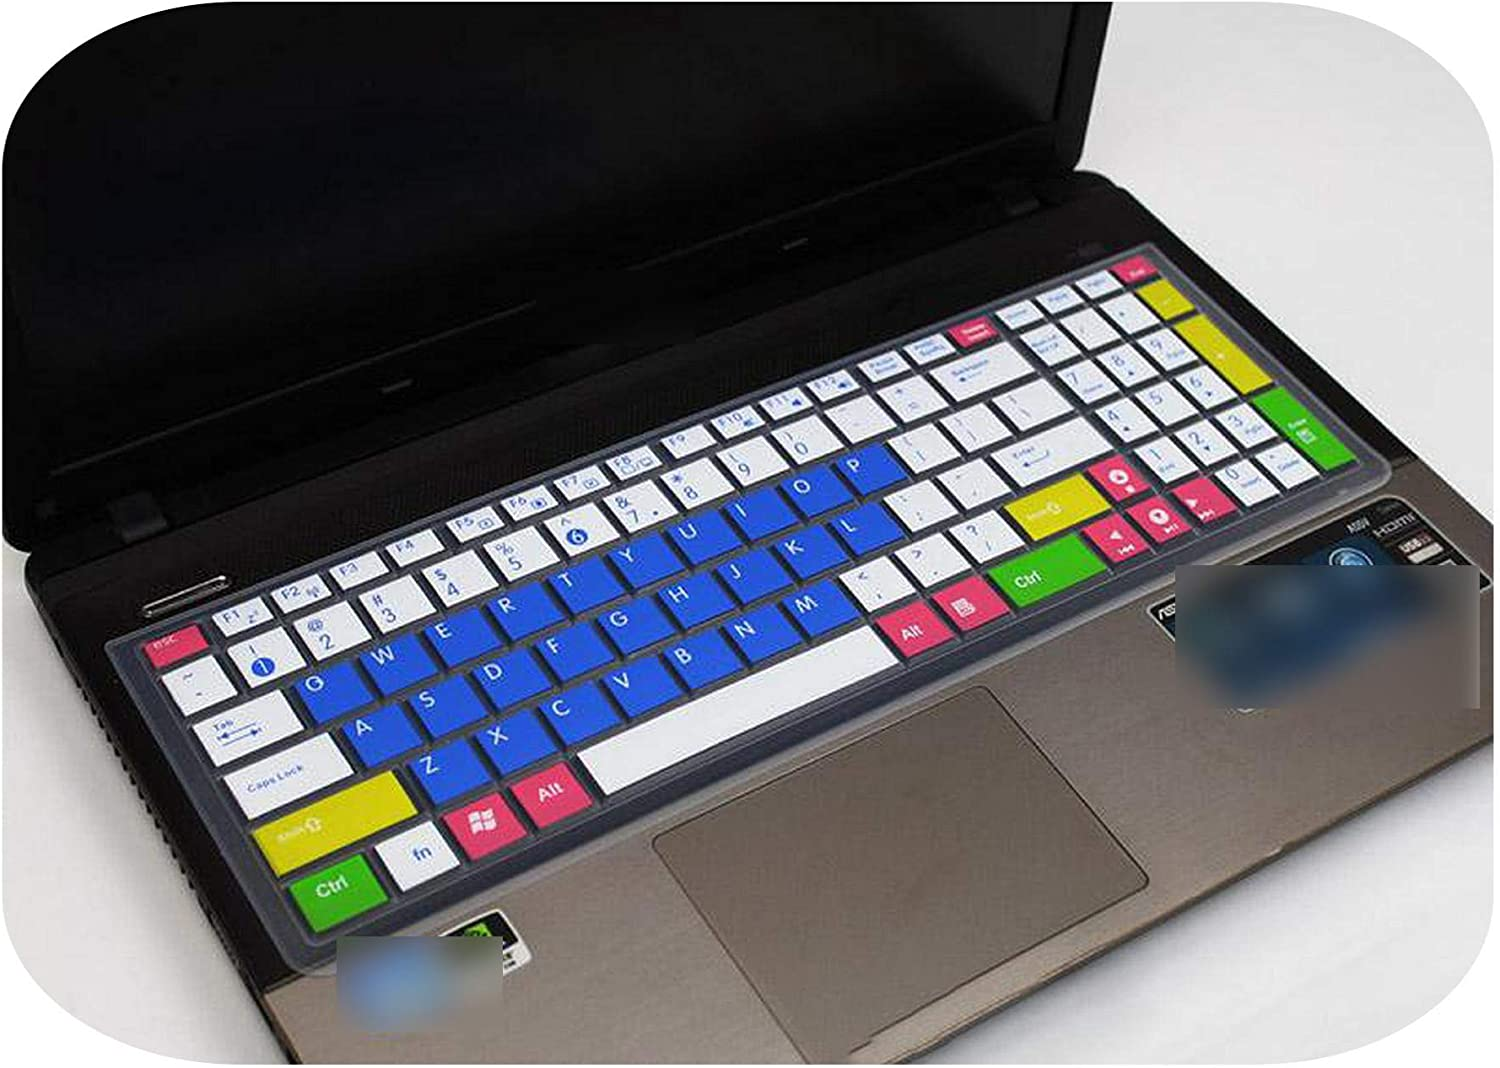 Laptop Keyboard Cover for Asus Vivobook 15 X542Bp X542U X542Uq X542Un X542Uf X542Ua X542Ur X540 X540Ma X540L X540S X541Na 15.6-Allpurple